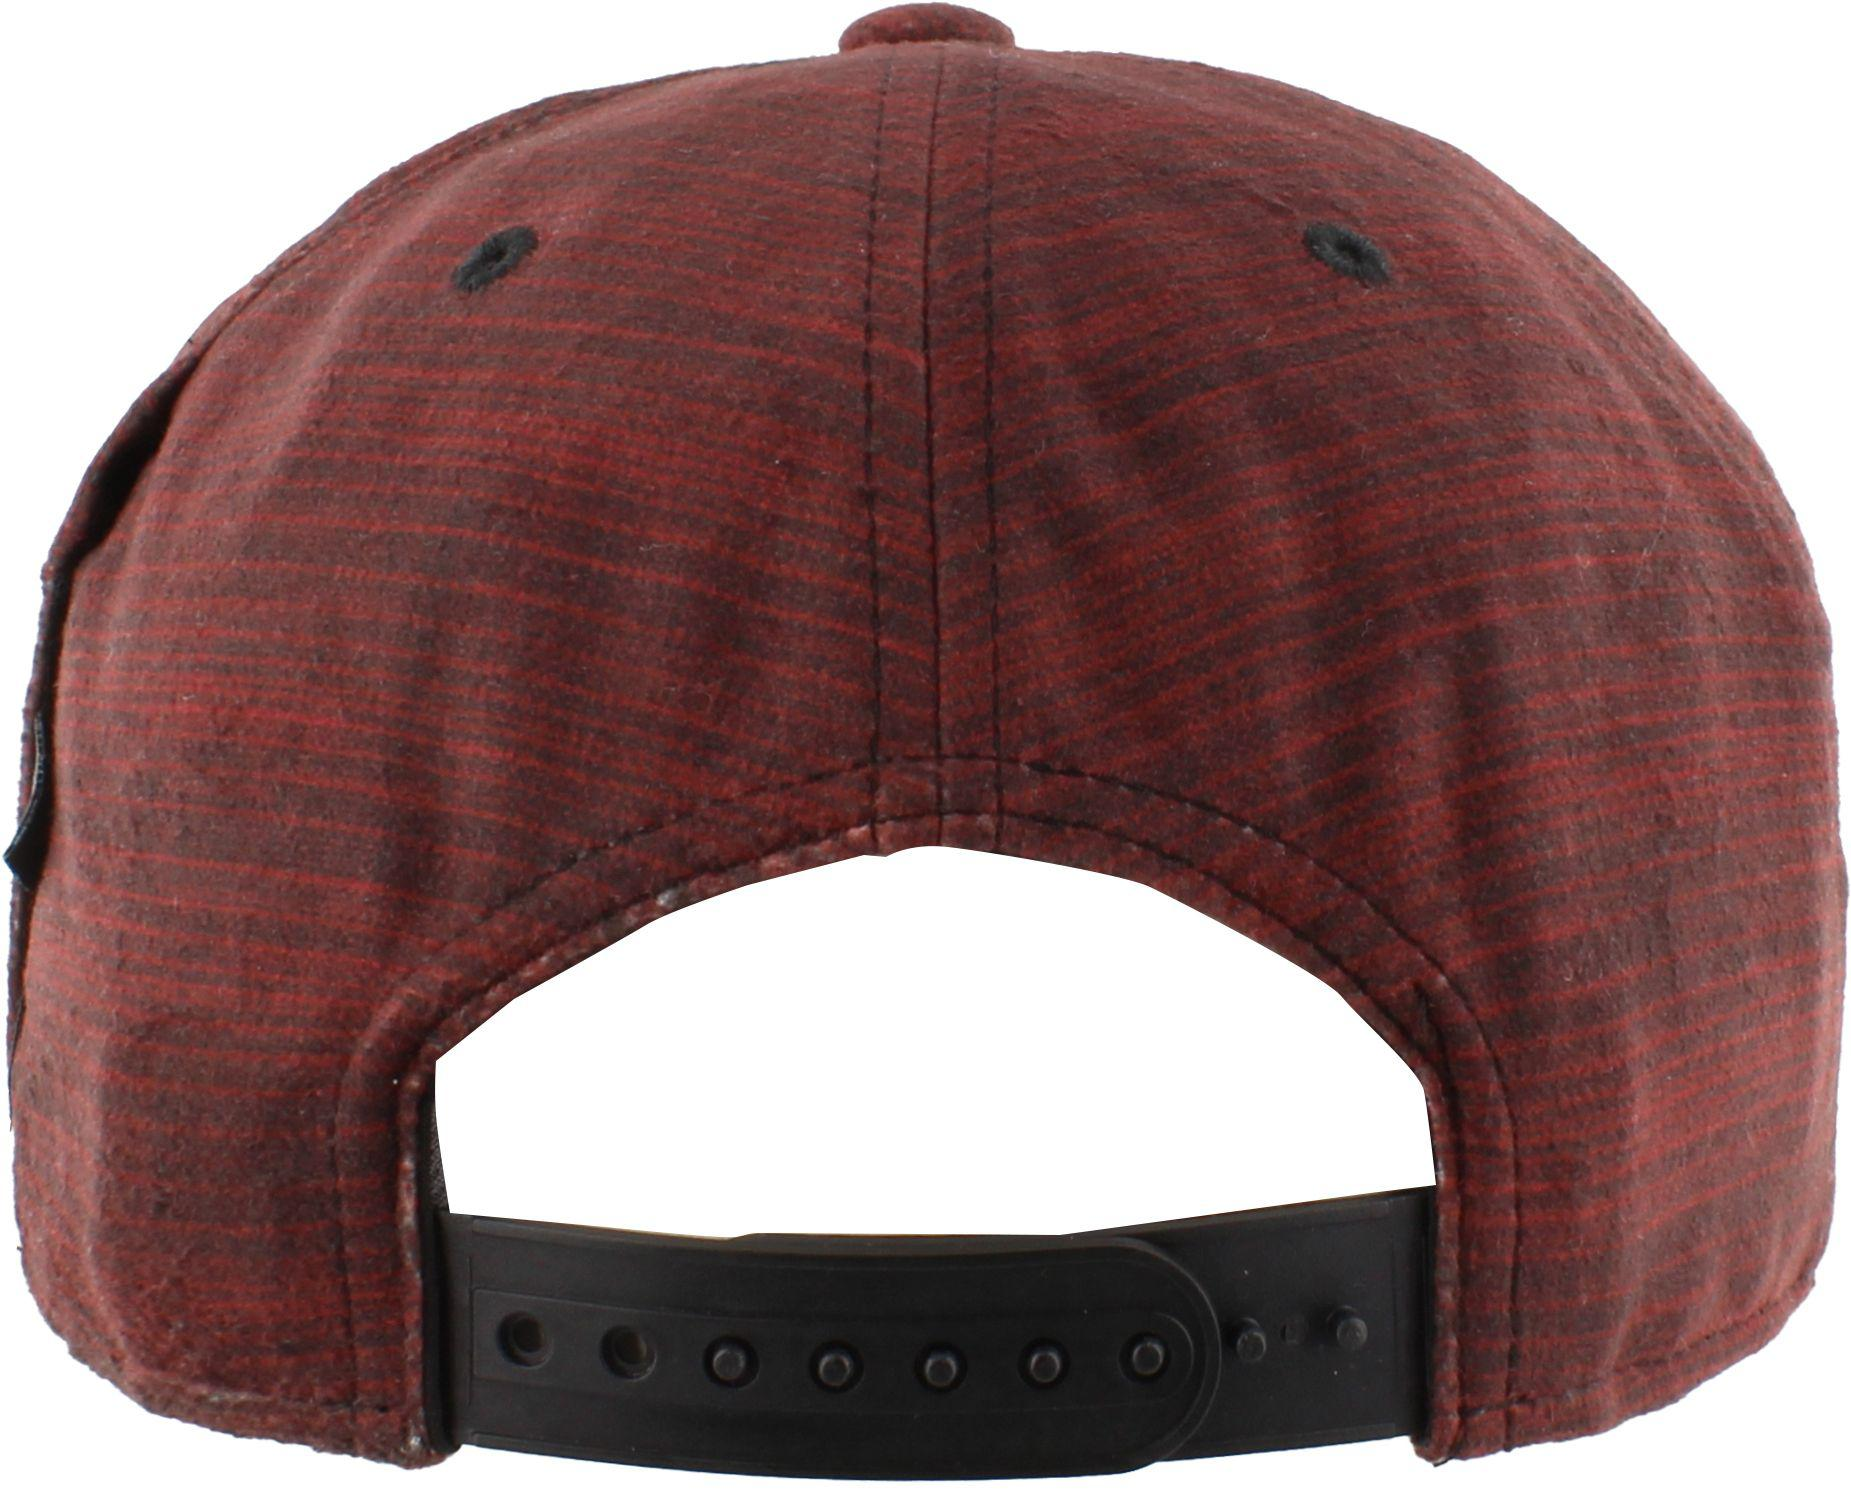 best service 56f3d 20a72 Adidas - Red Courtside Snapback Cap for Men - Lyst. View fullscreen